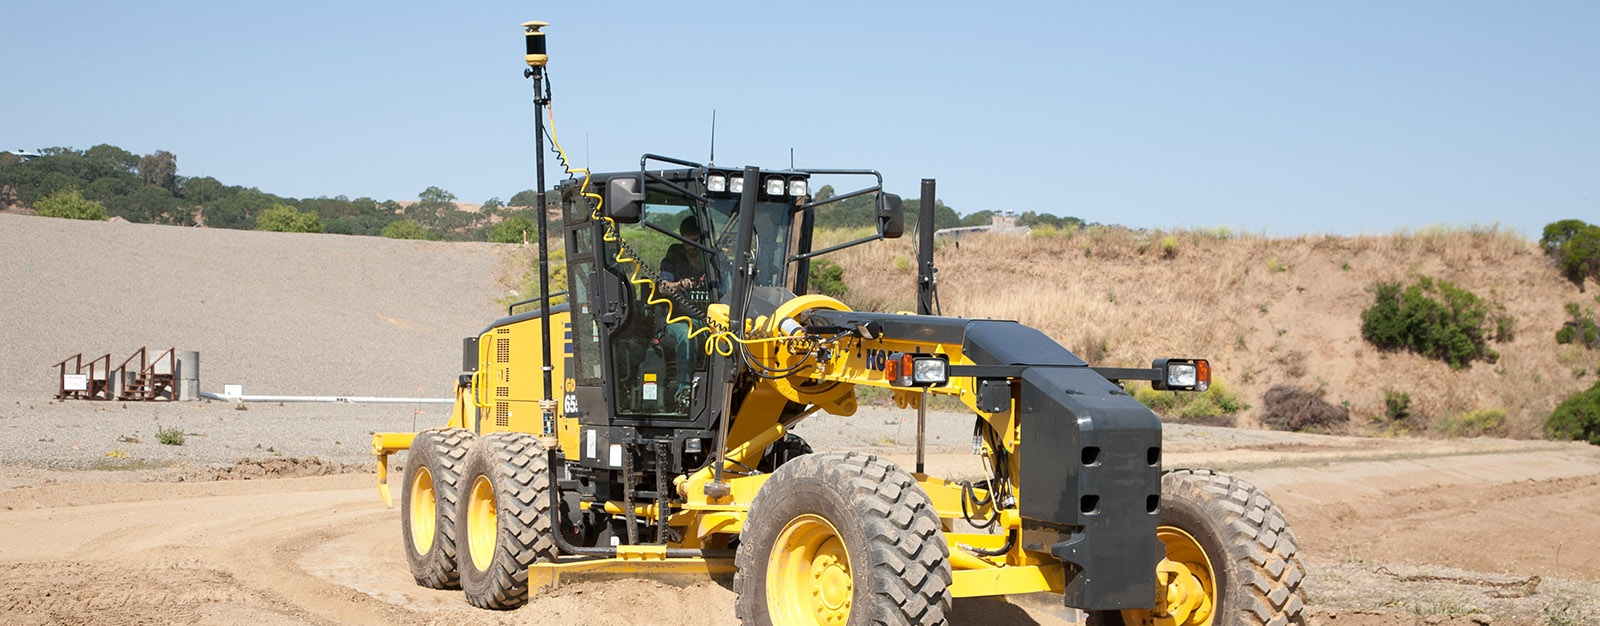 Millimeter GPS Grader | Topcon Positioning Systems, Inc